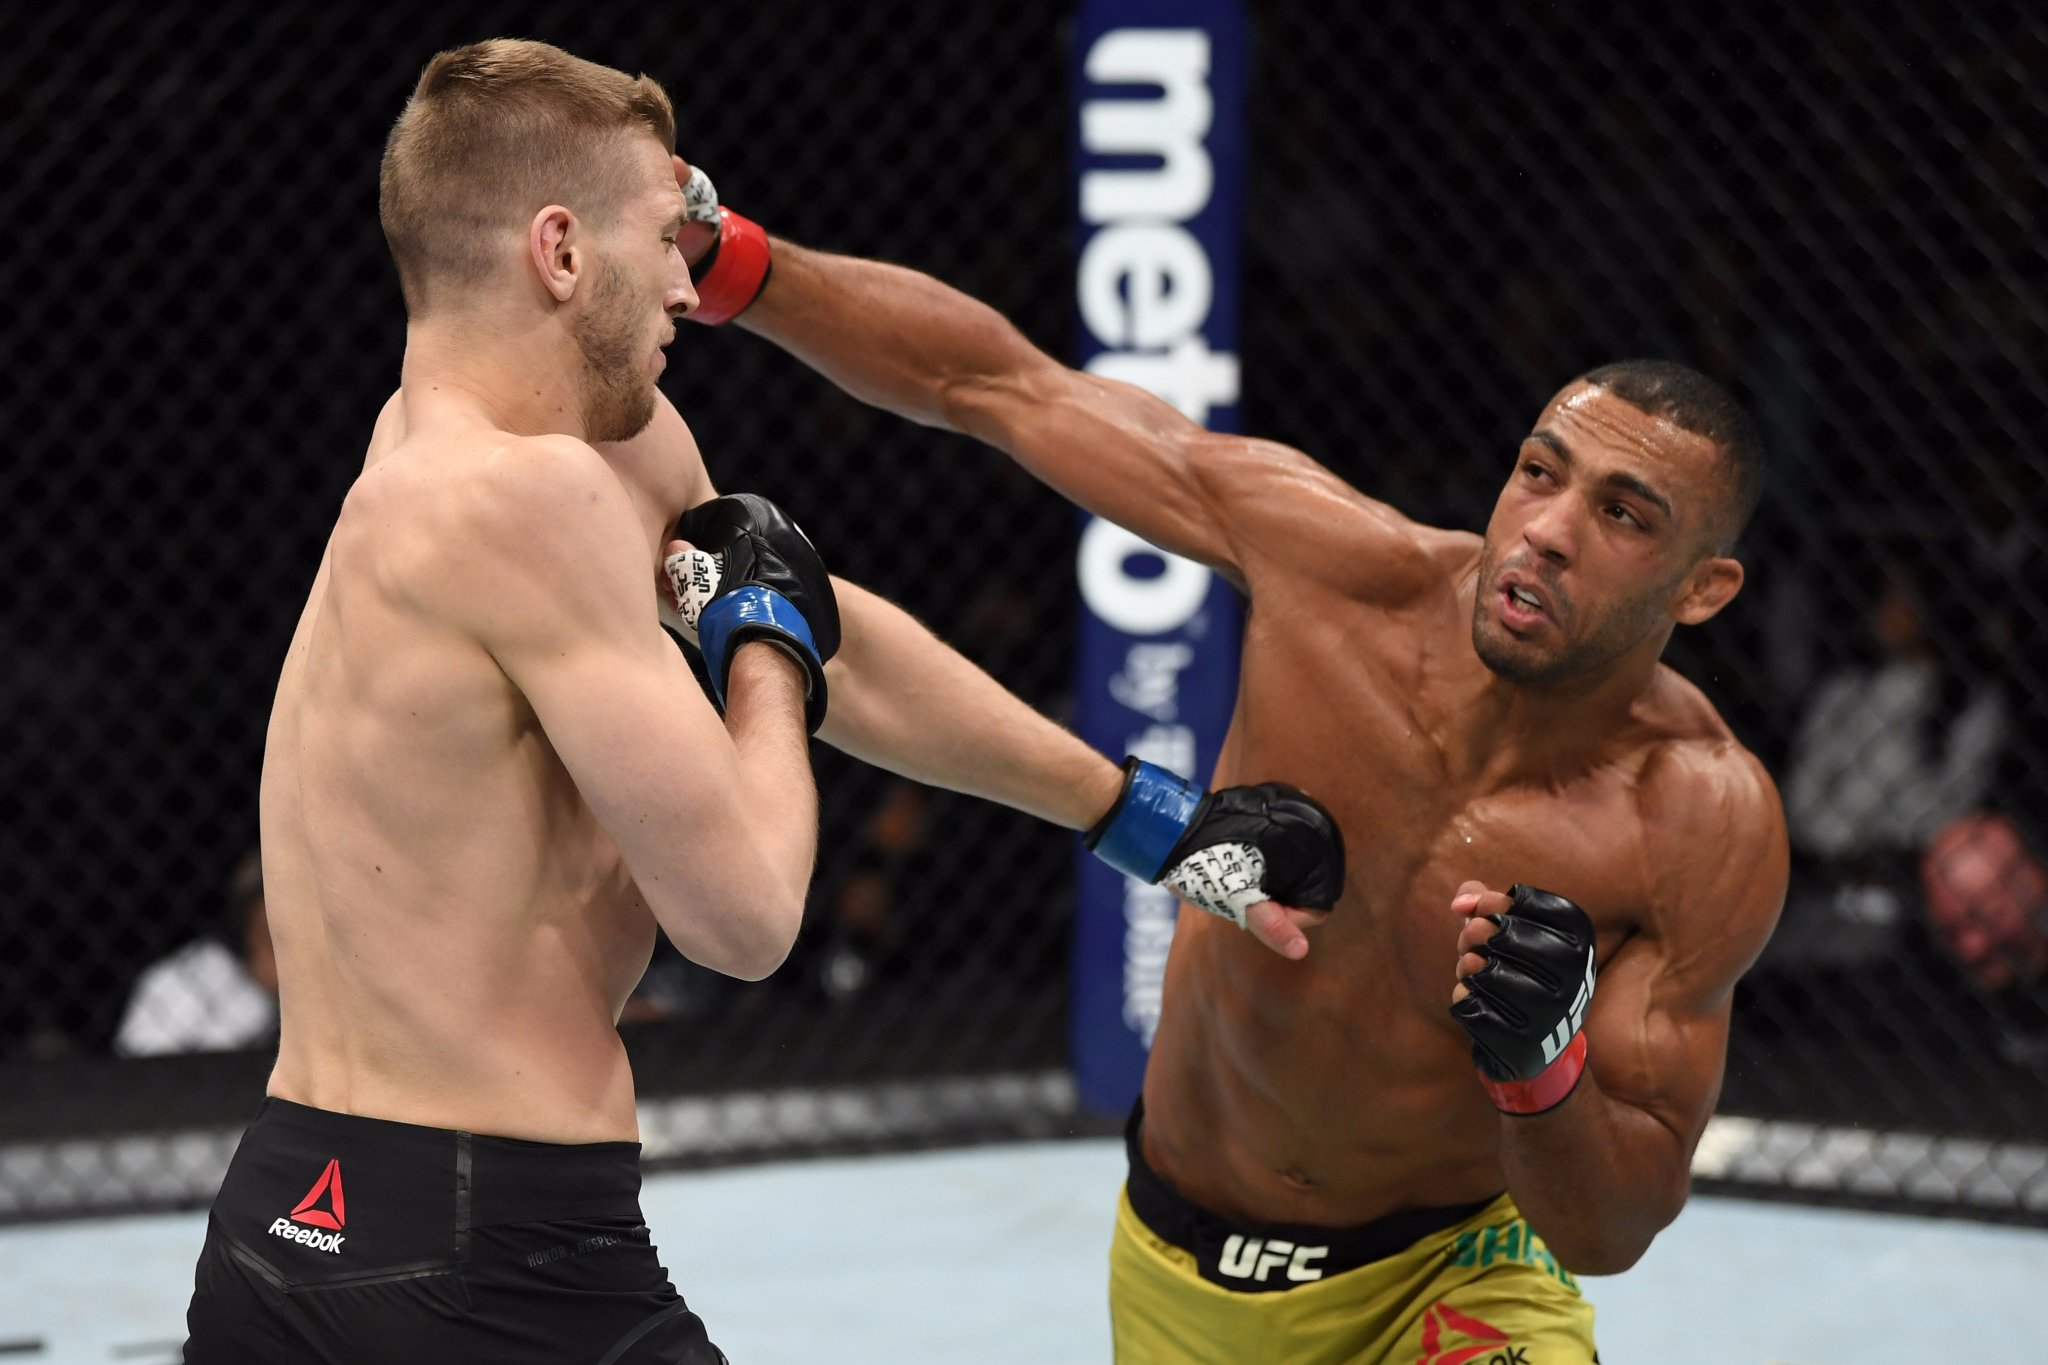 UFC on FOX 31 Results - Edson Barboza Decimates Dan Hooker for Three Rounds -